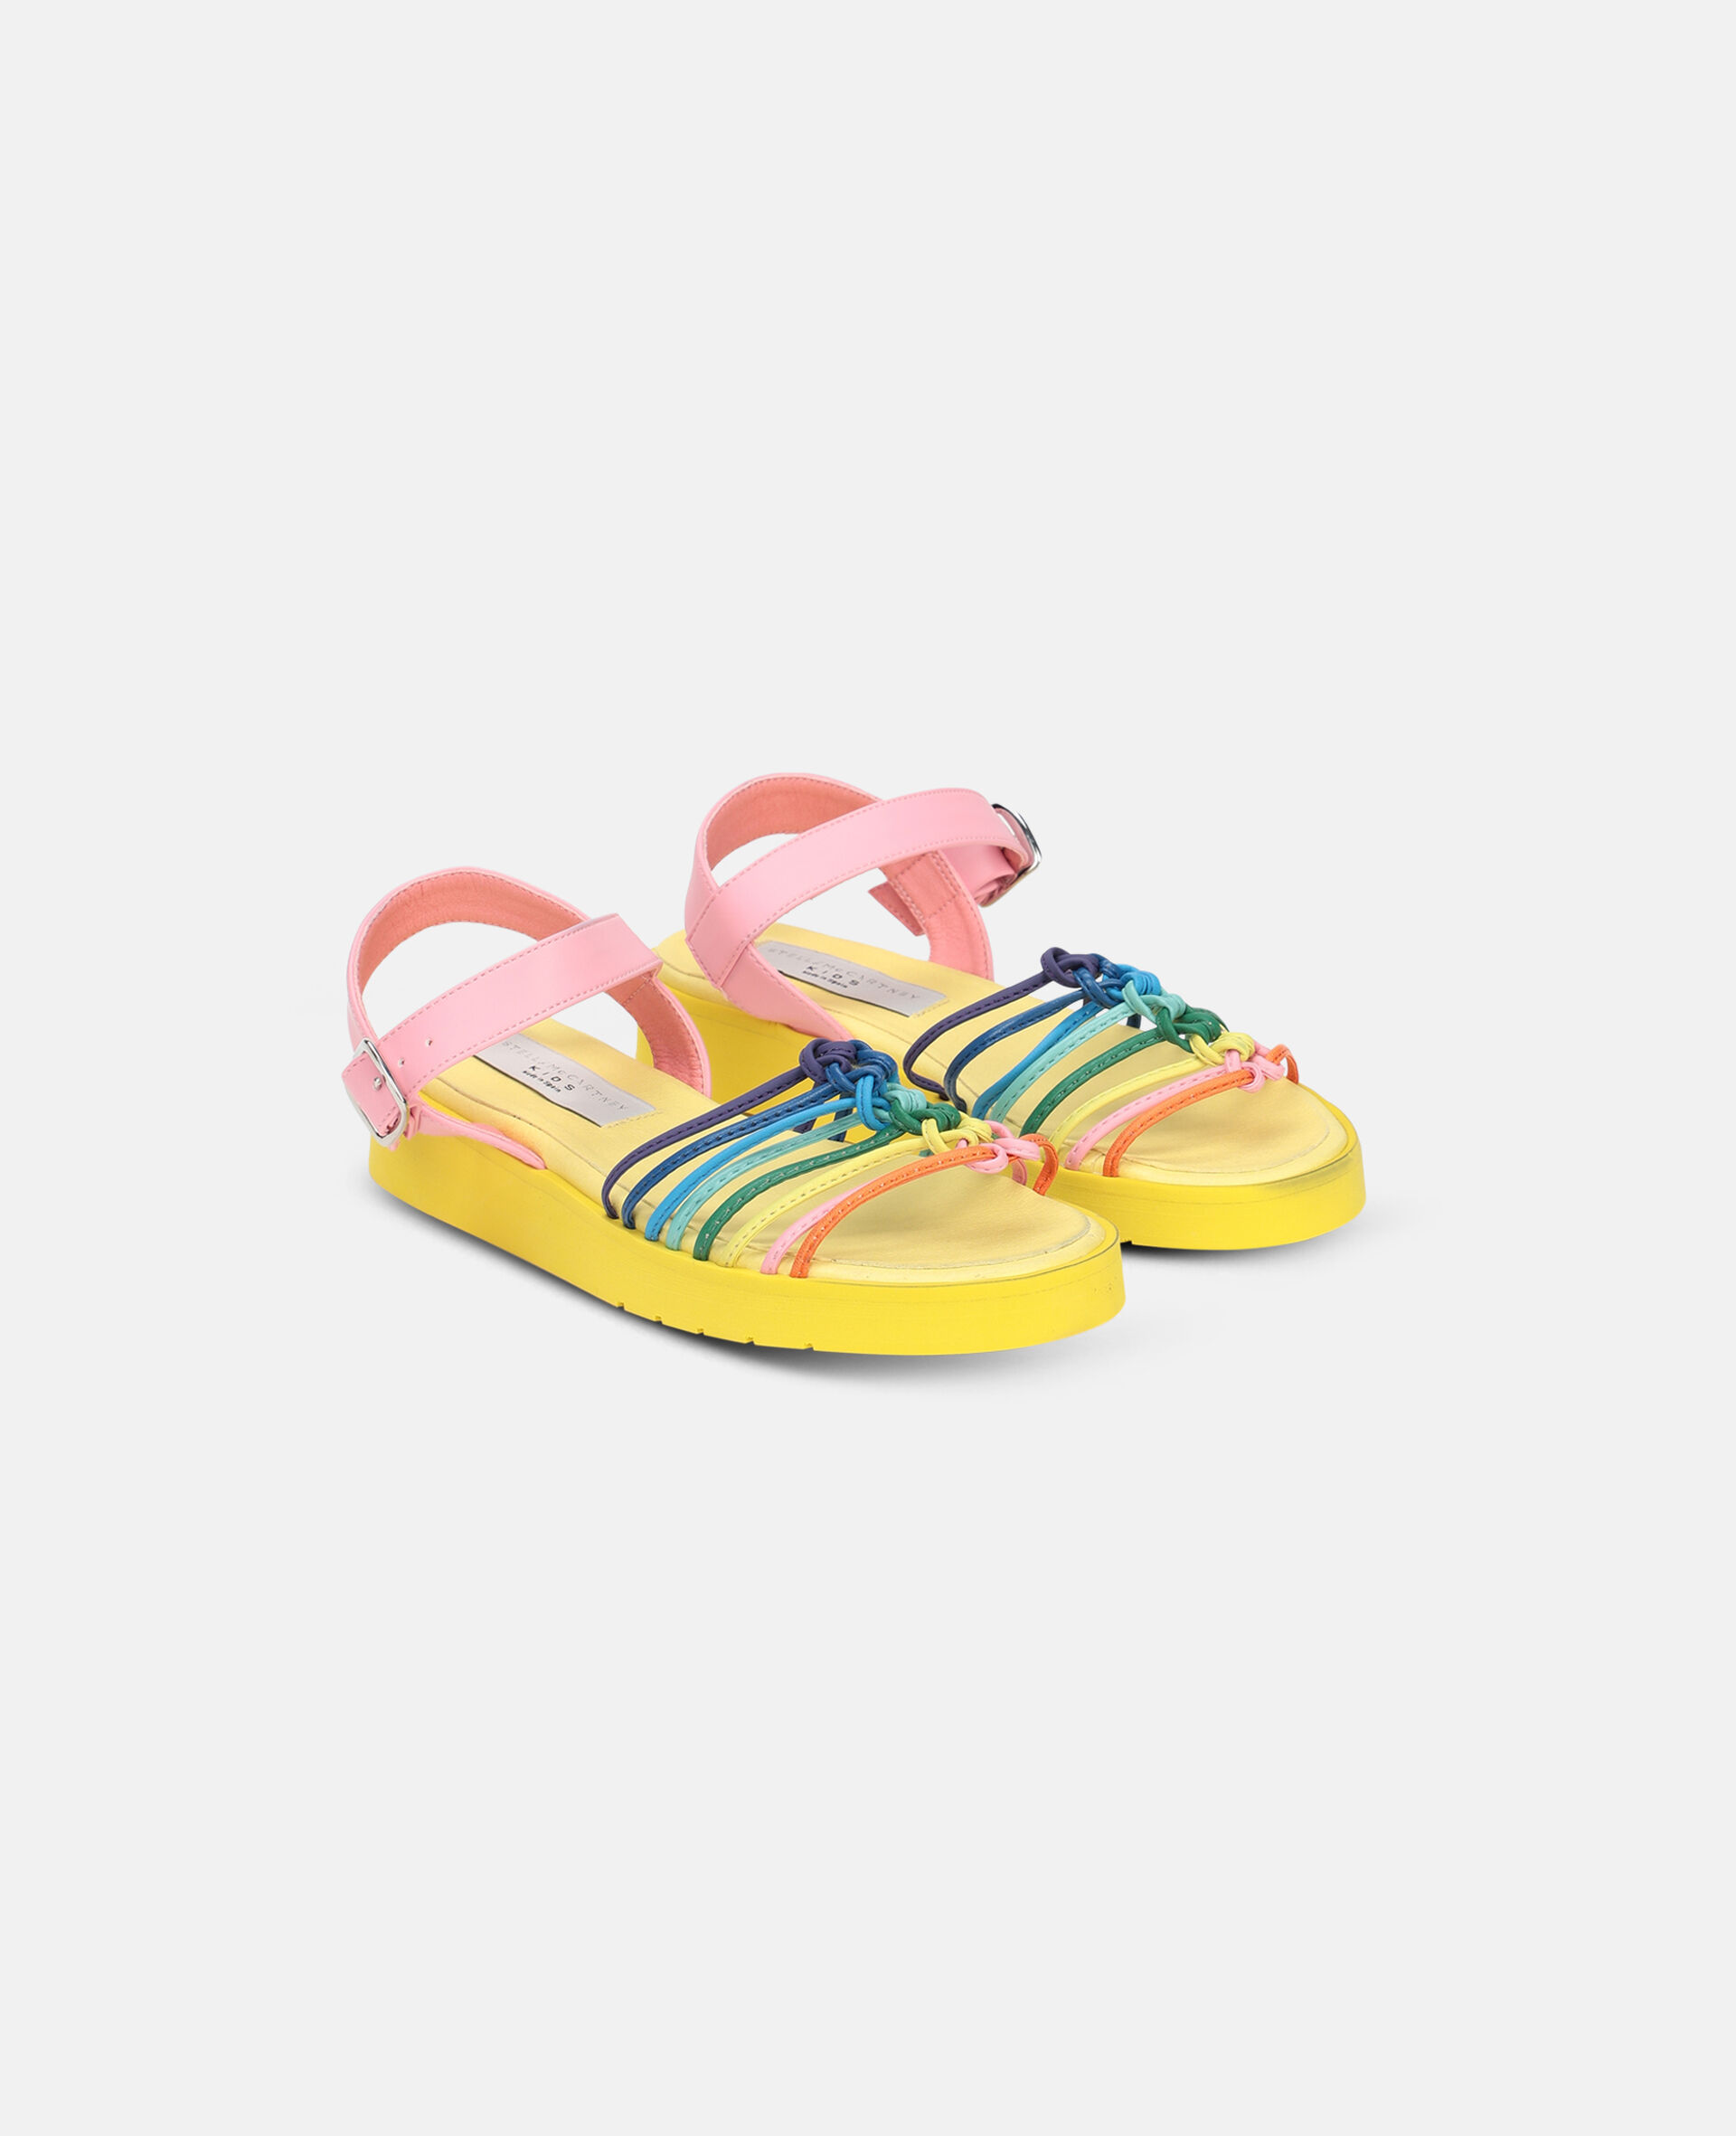 Multicolour Knotted Sandals -Multicolour-large image number 3